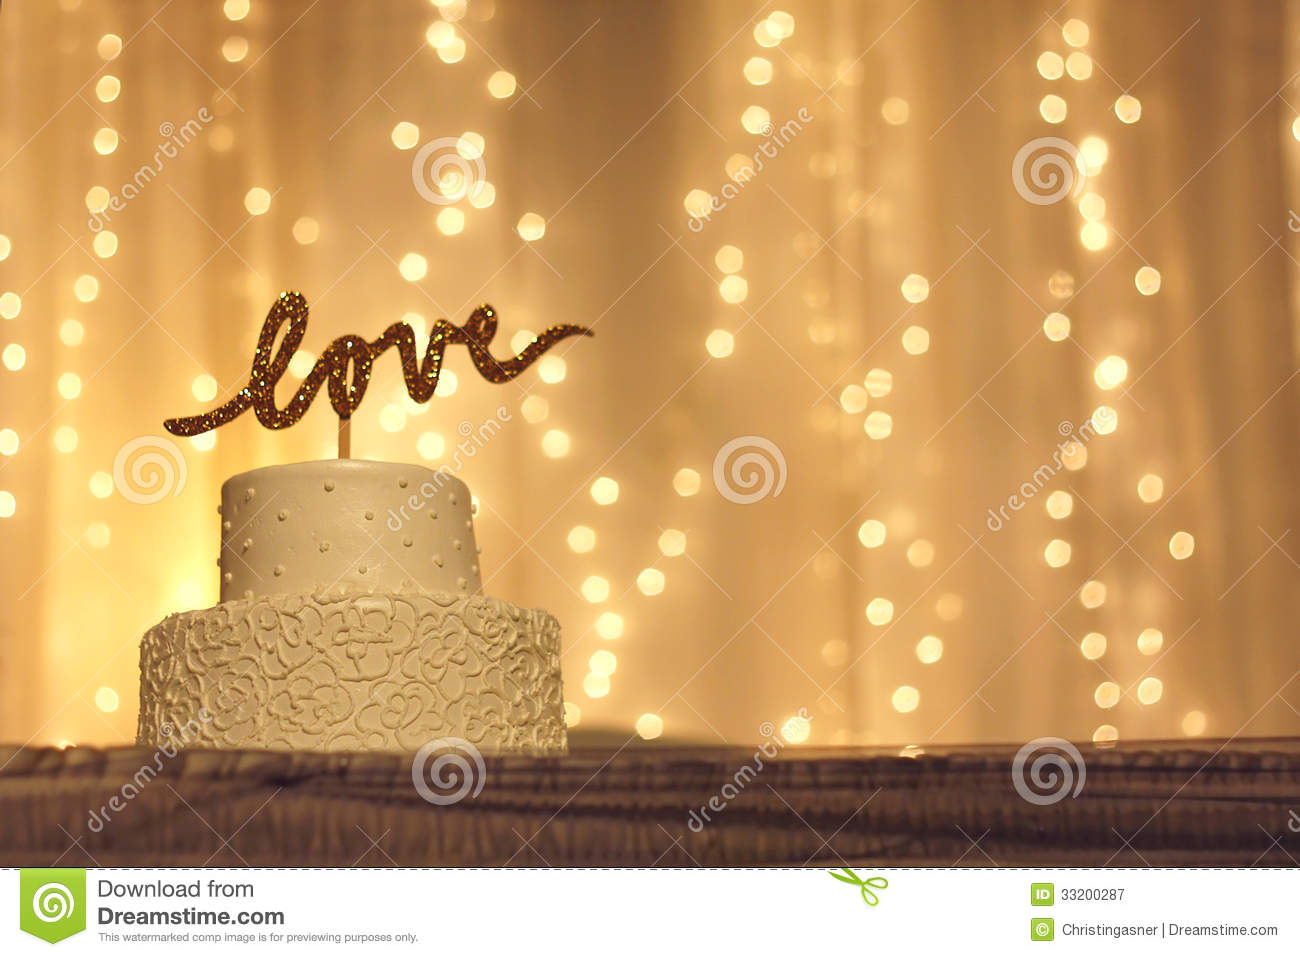 Fall String Lights Wallpaper Weddings Wedding Cake With Love Topper Royalty Free Stock